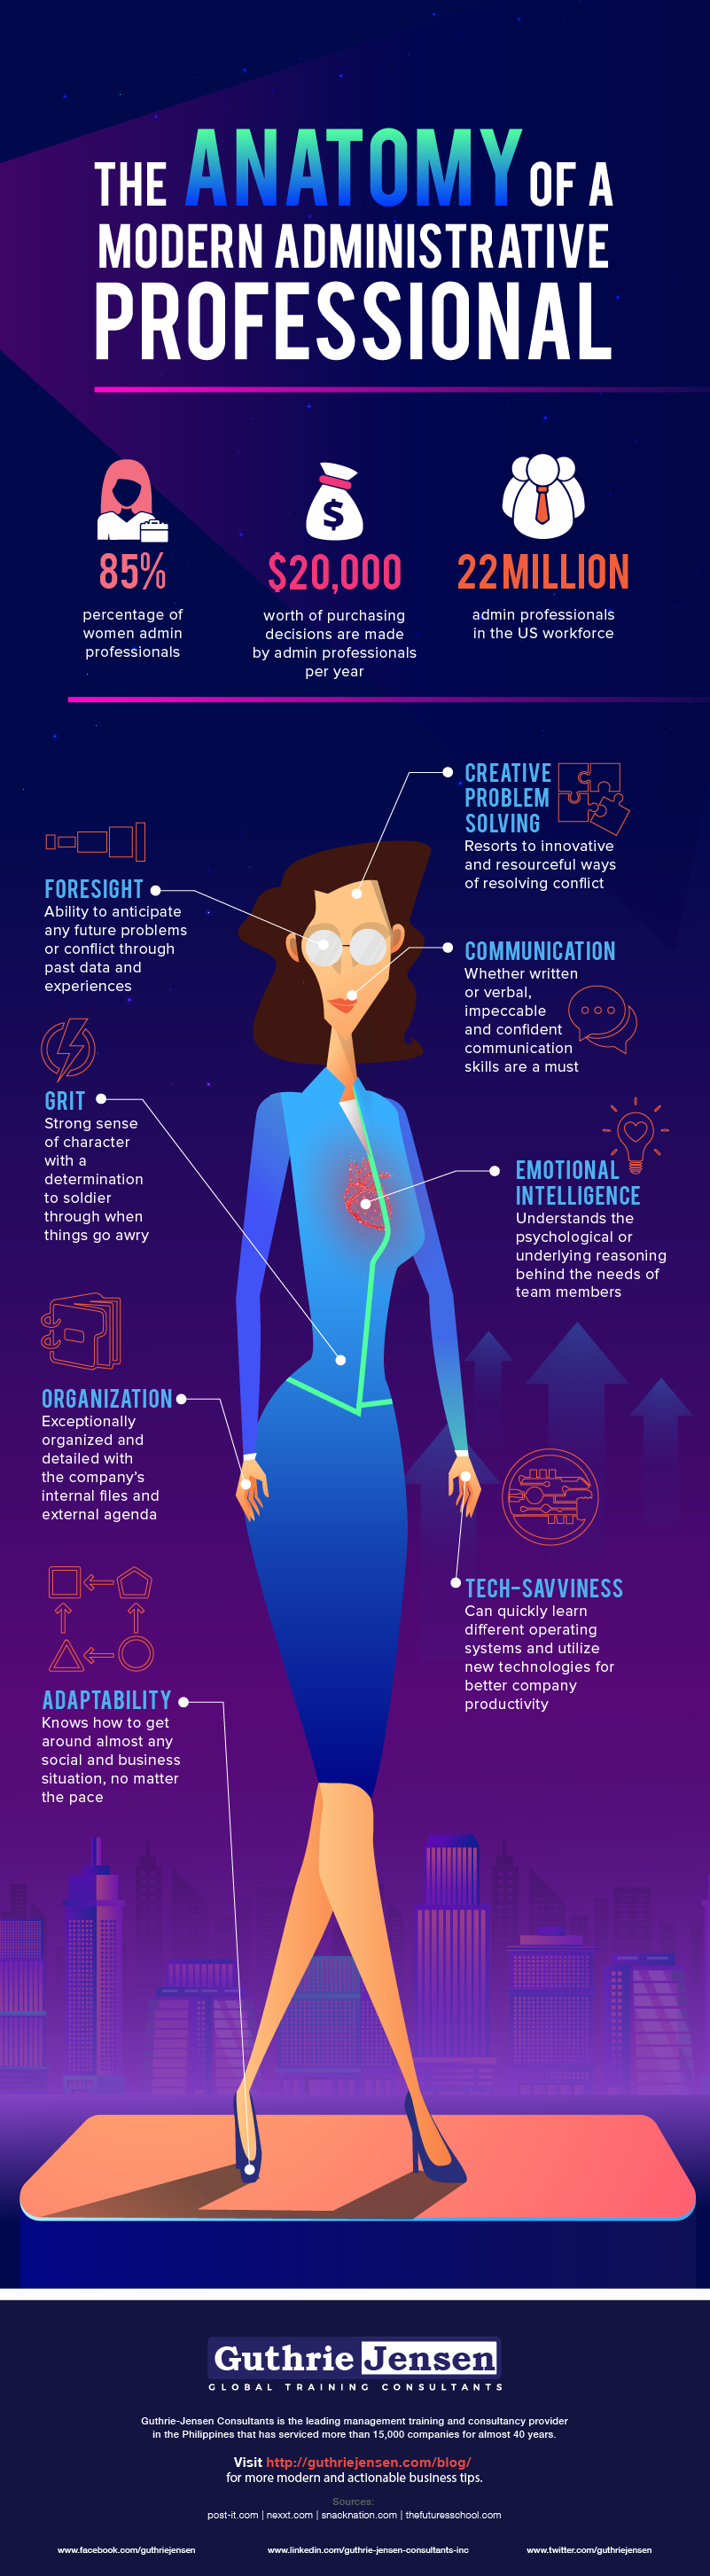 The Anatomy of a Modern Administrative Professional - Infographic